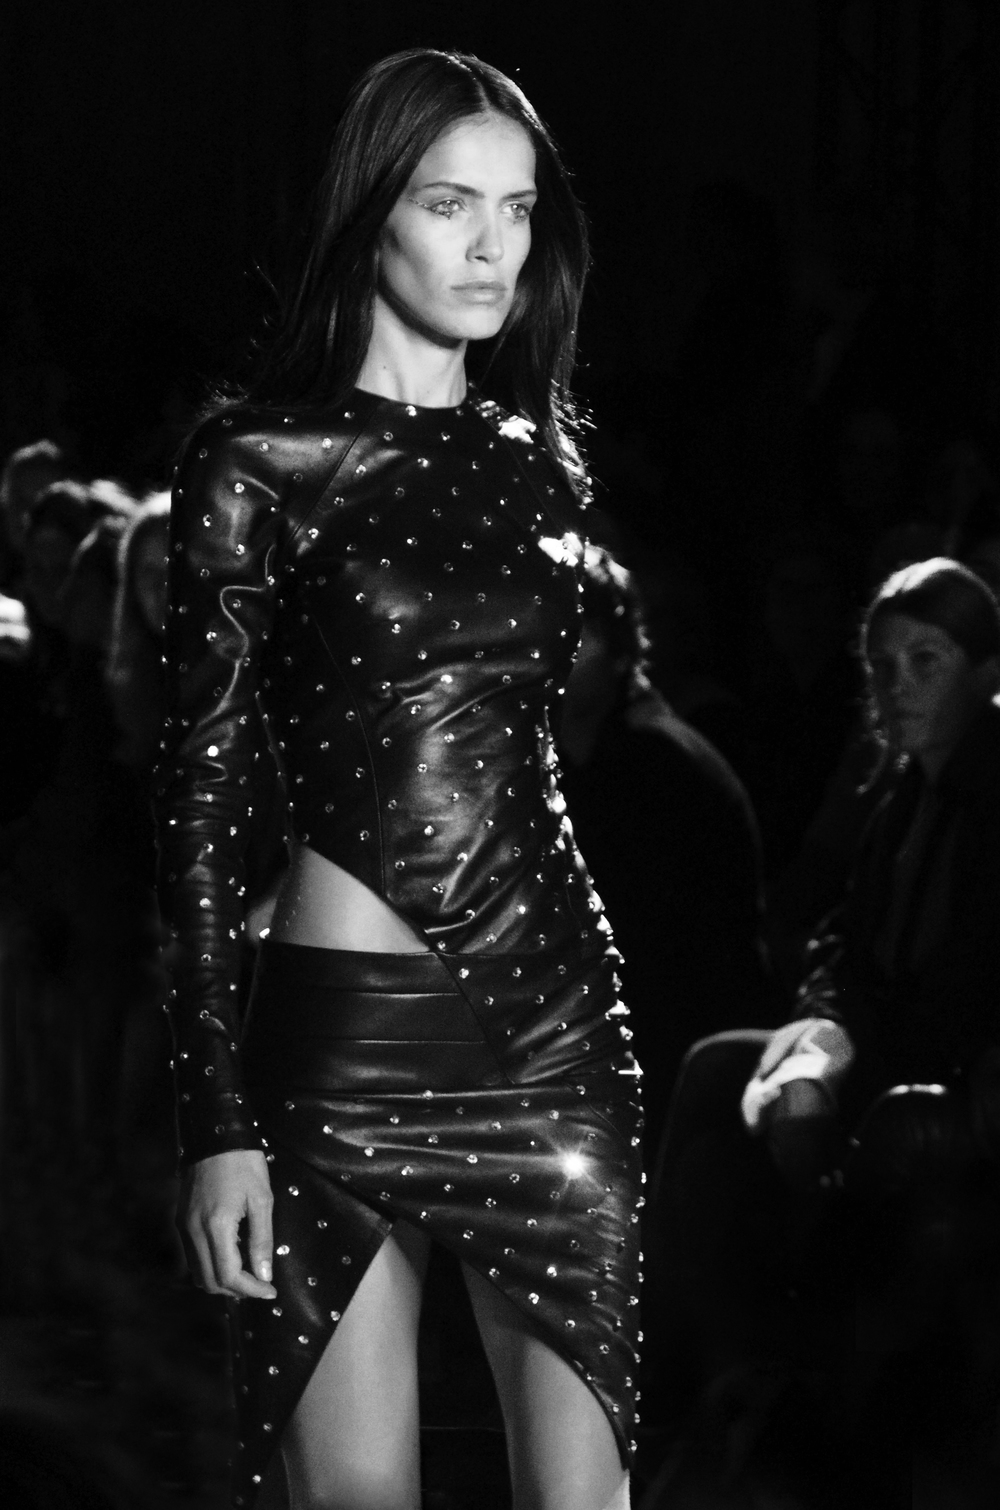 alexandre vauthier haute couture fall/winter 2014/15 model amanda wellsh photography by floriana castagna      | S/TUDIO